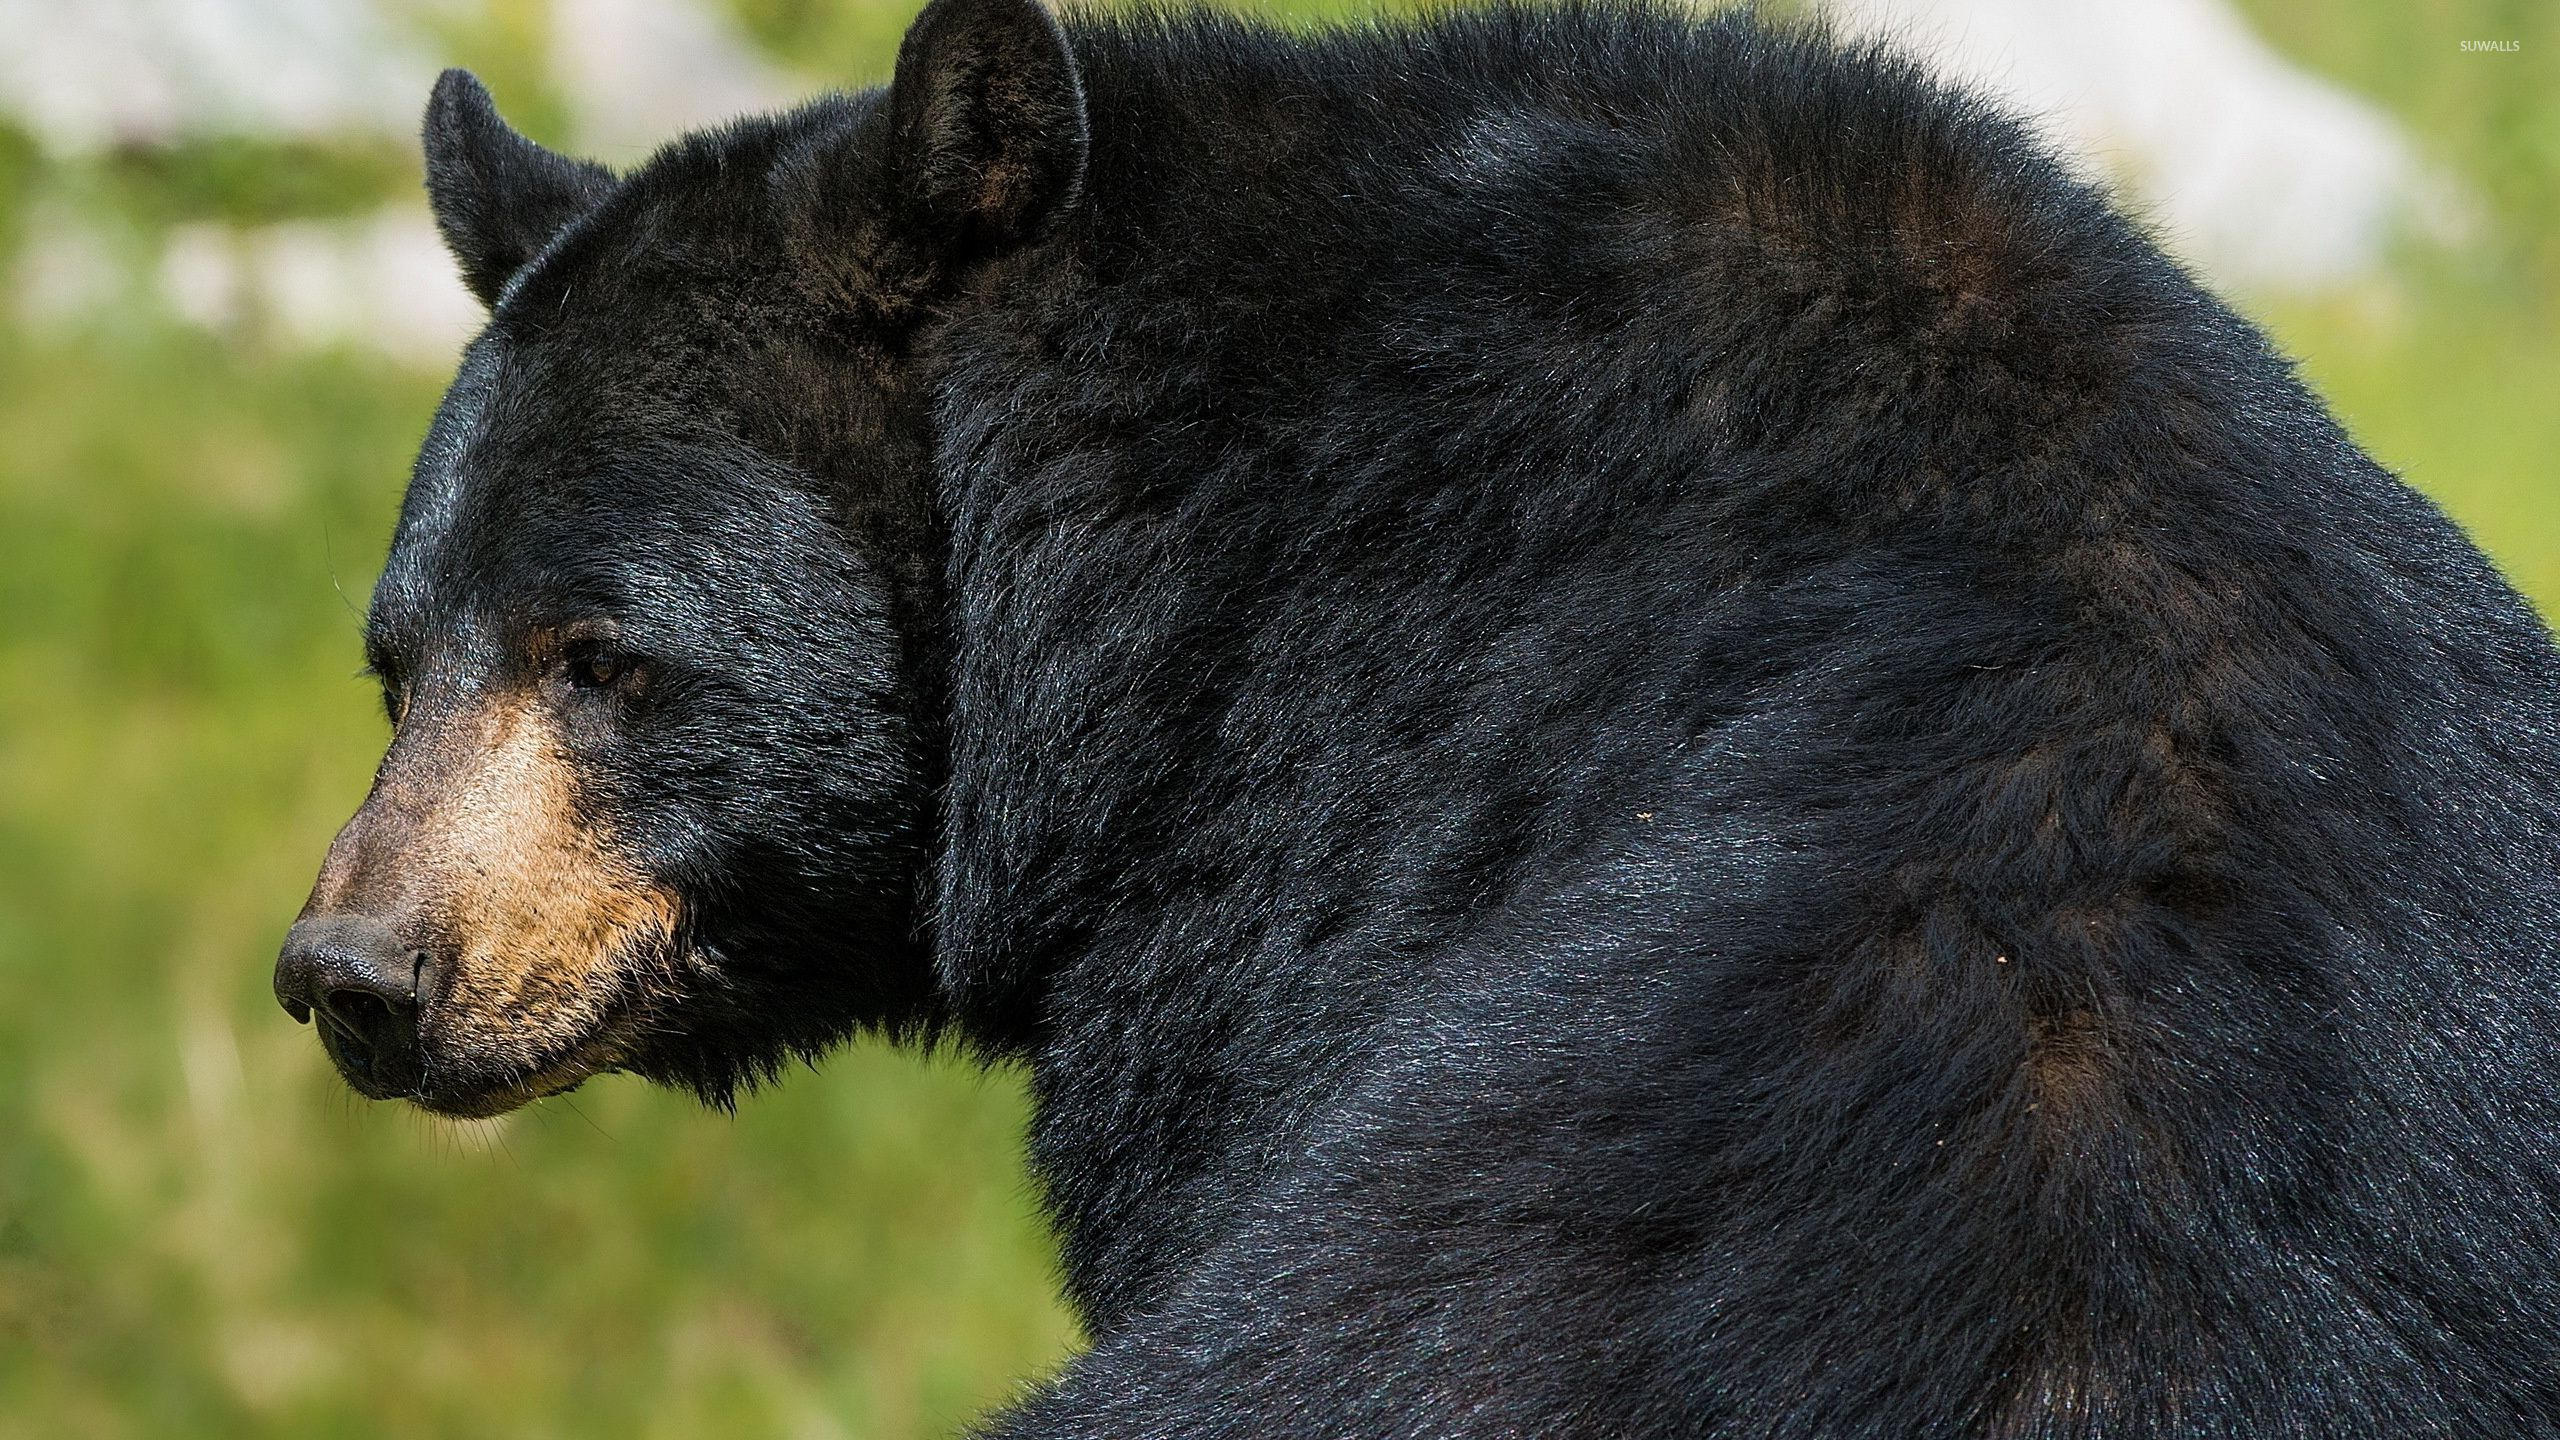 Awesome Quotes Wallpapers Free Download American Black Bear Wallpaper Animal Wallpapers 32574